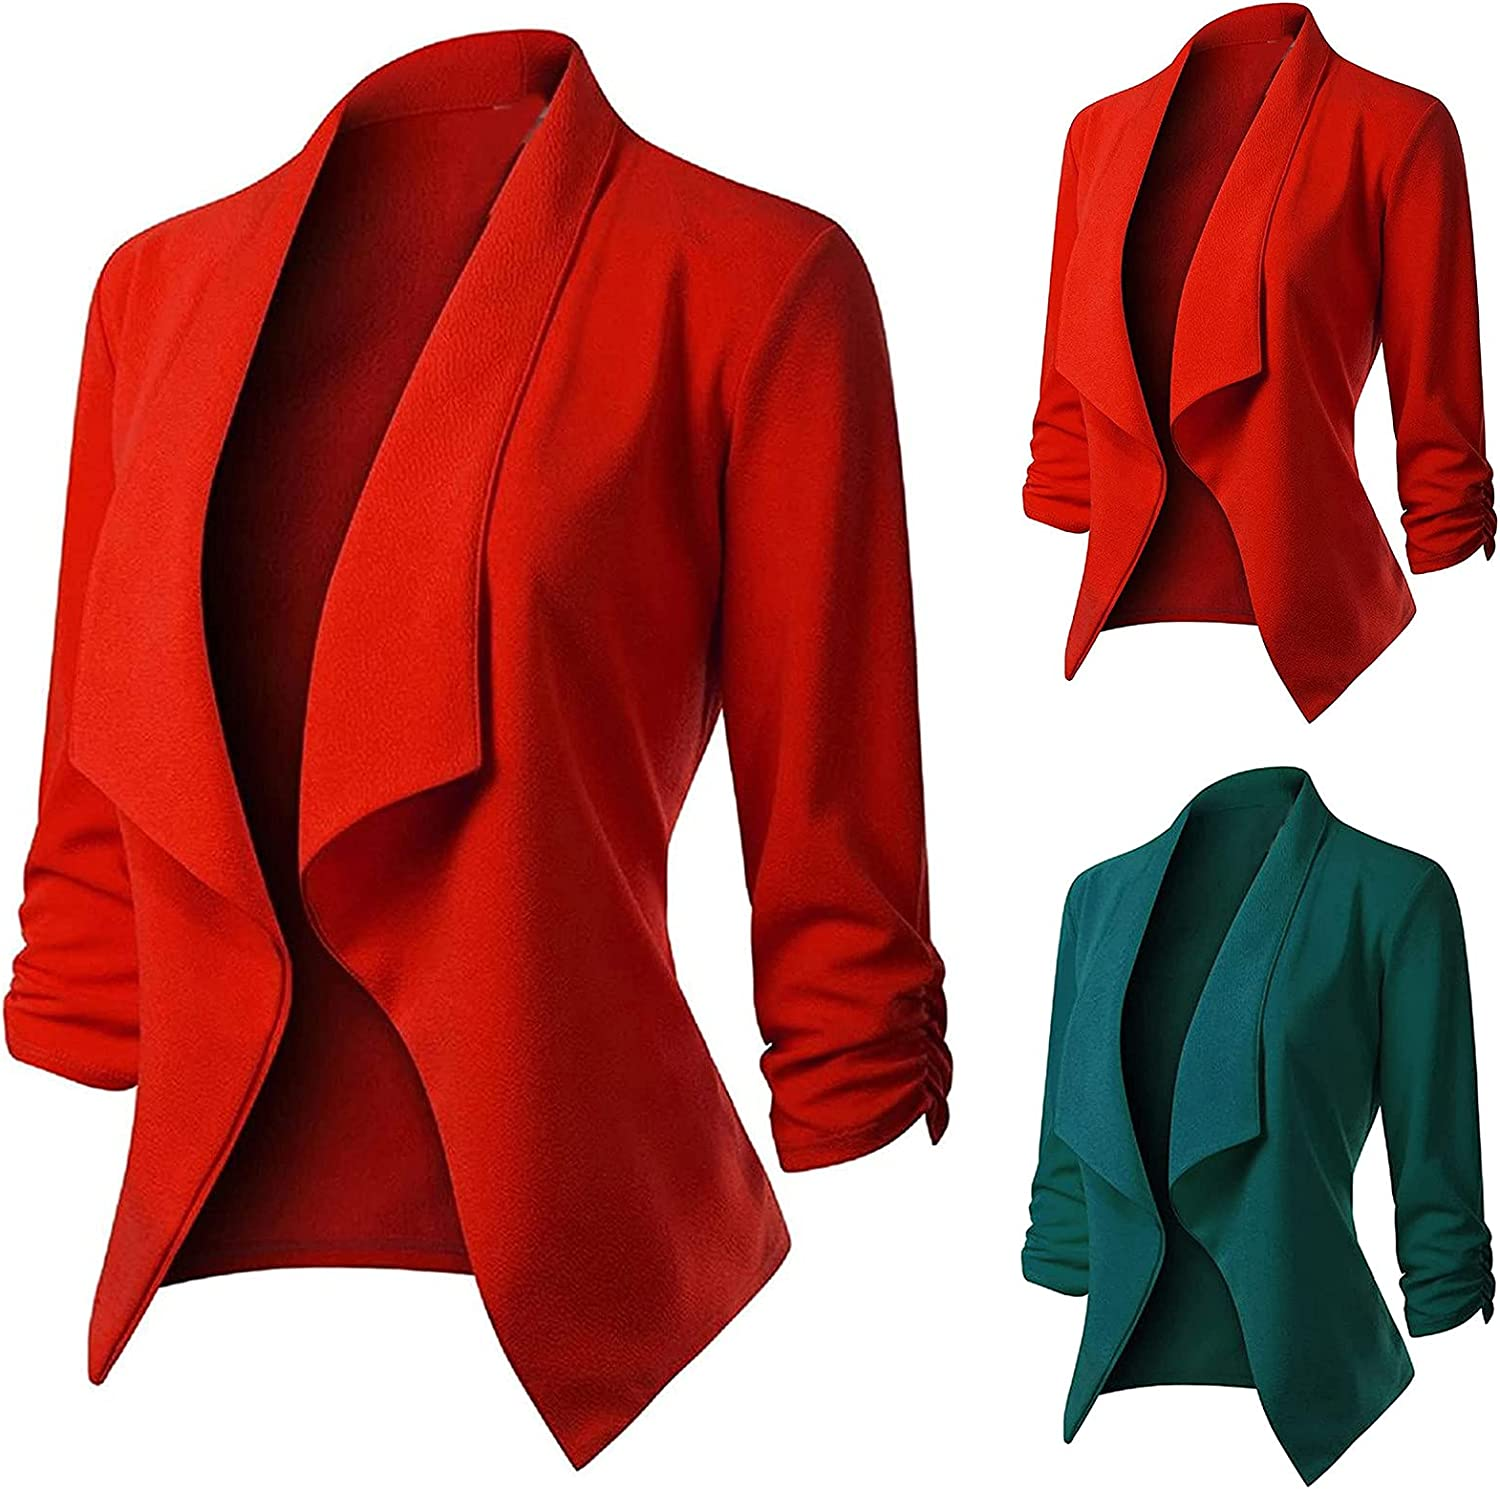 Blazer Max 72% OFF Jackets for Women Casual Solid Suit Sleeve 4 3 Financial sales sale O Business